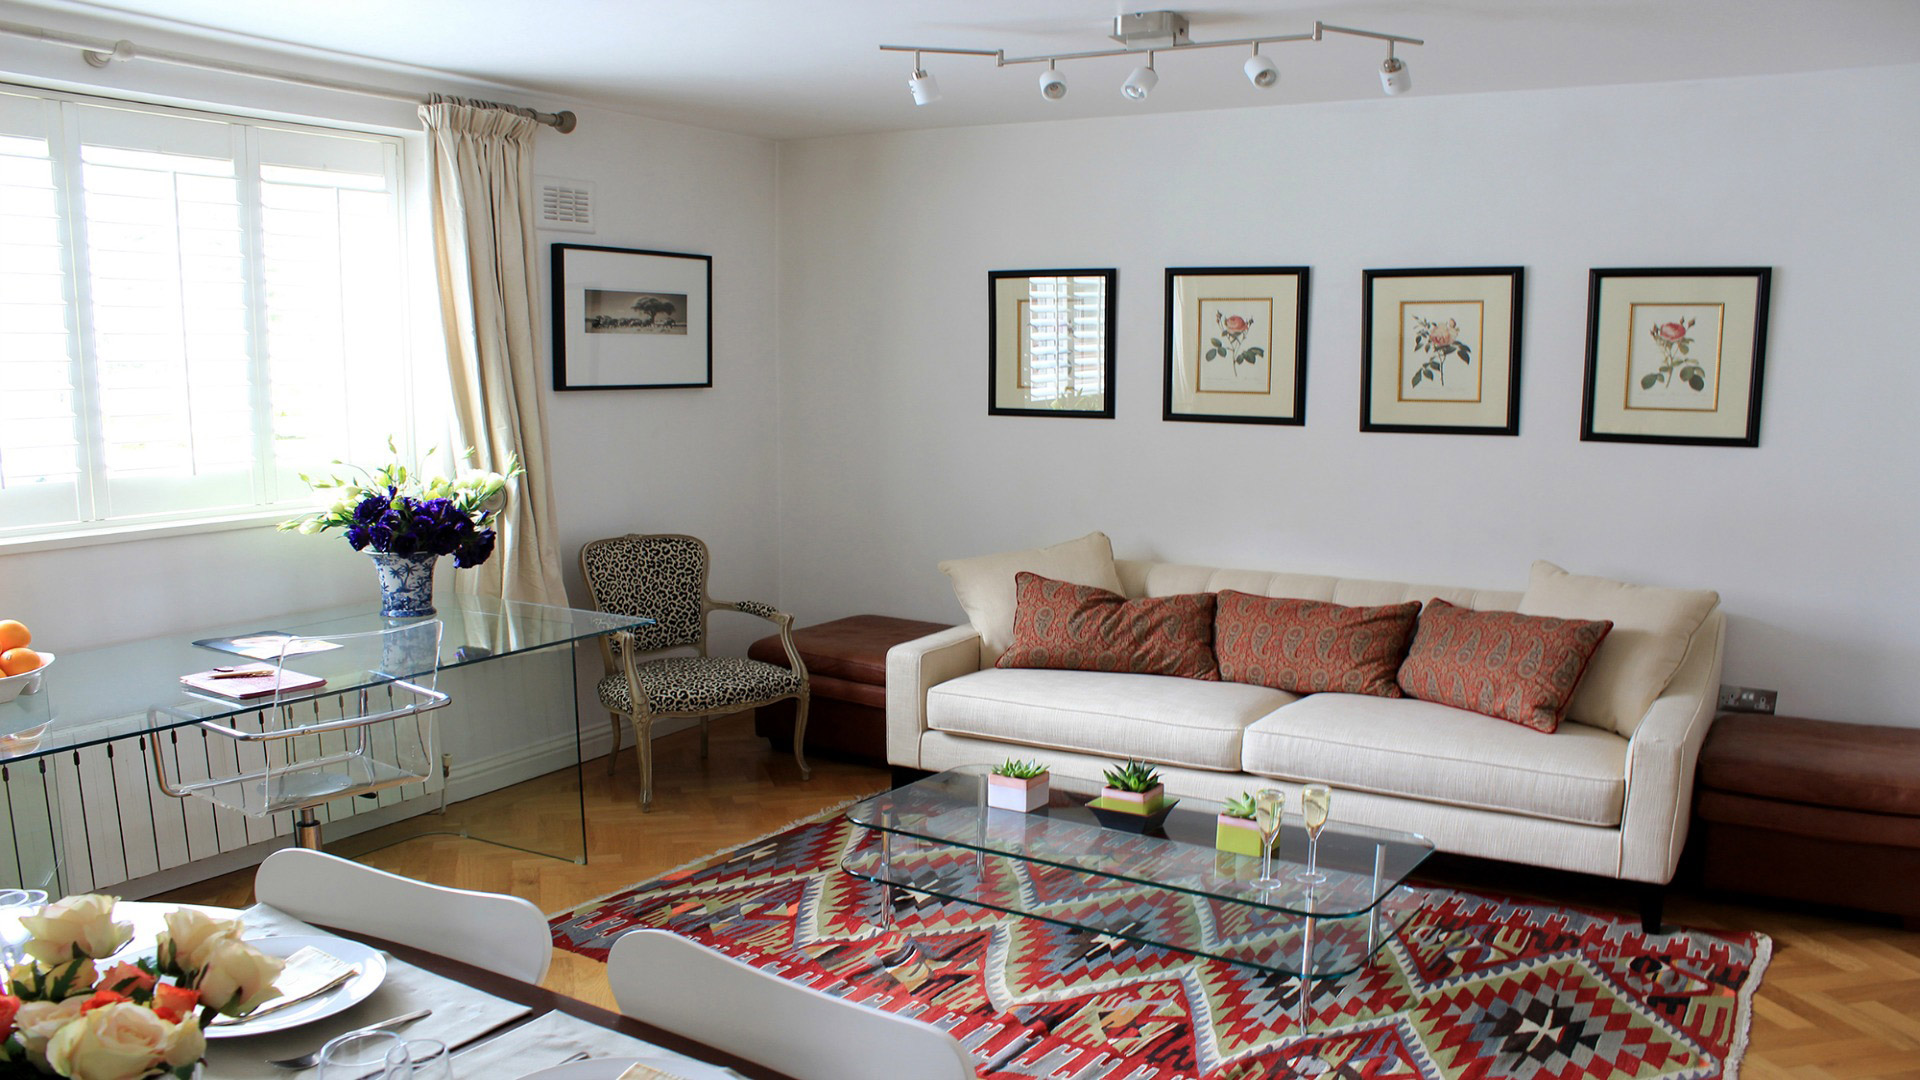 2 Bedroom London Vacation Apartment Rental with Car ...